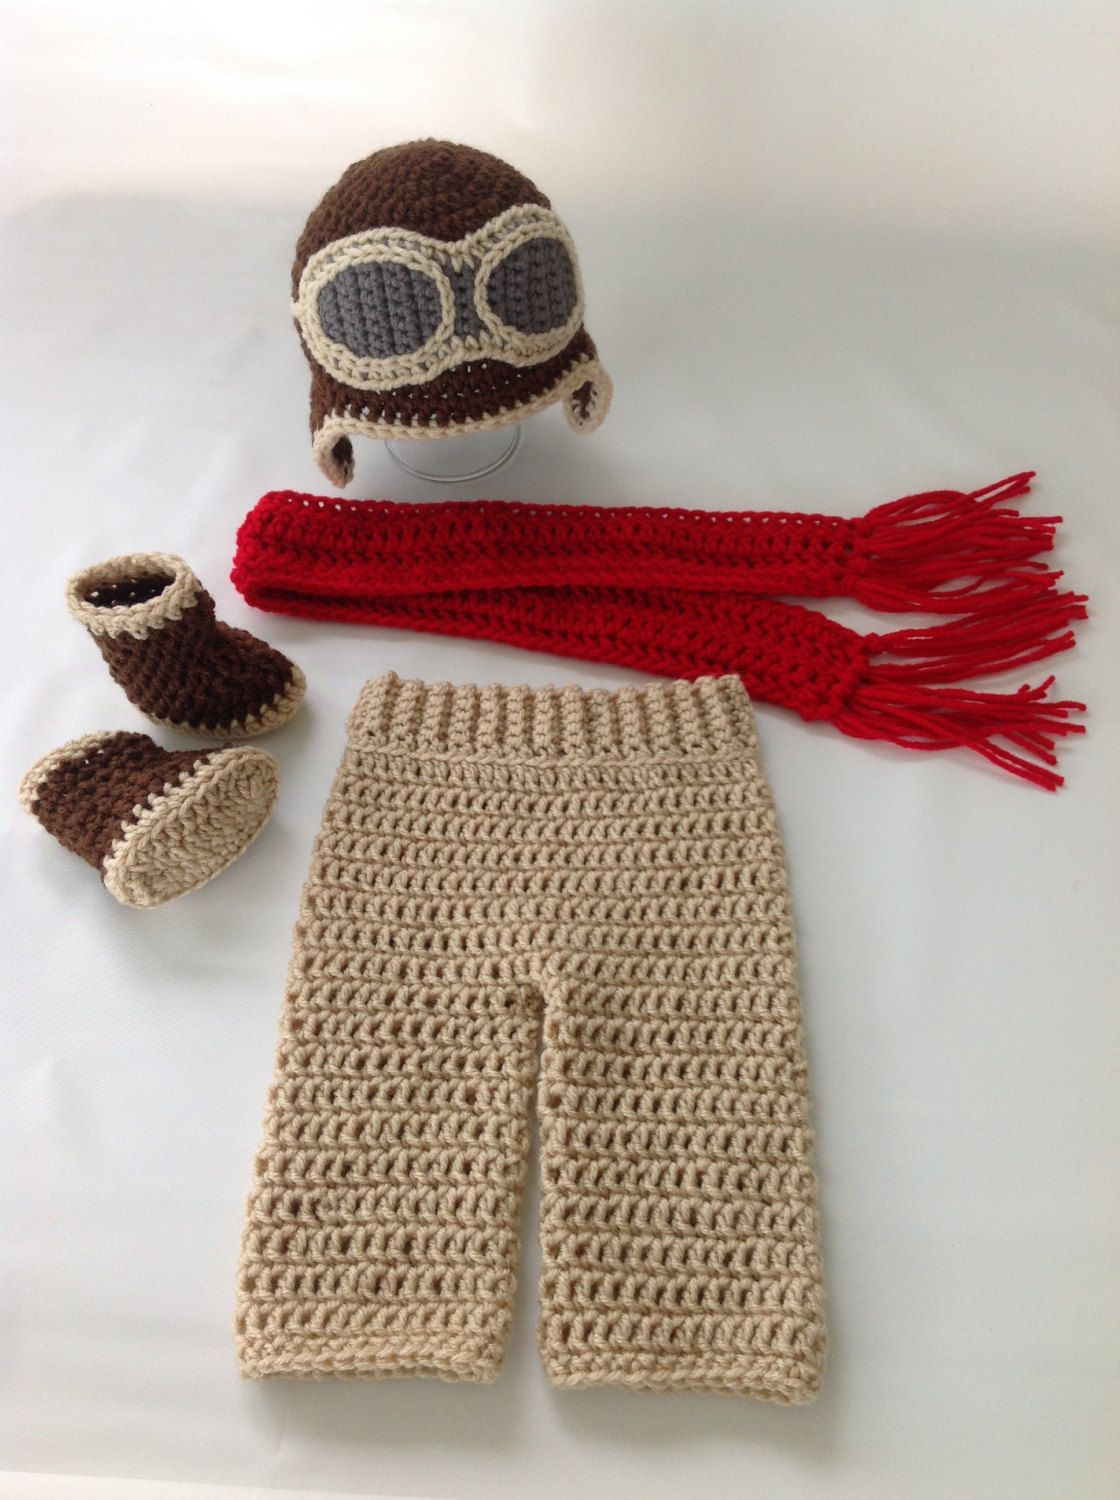 51c0f9bcb Baby Aviator Outfit - Crochet Aviator Costume - Baby Pilot Costume - Crochet  - Photography Prop - Diaper Cover Set w/Boots - Made To Order by ...